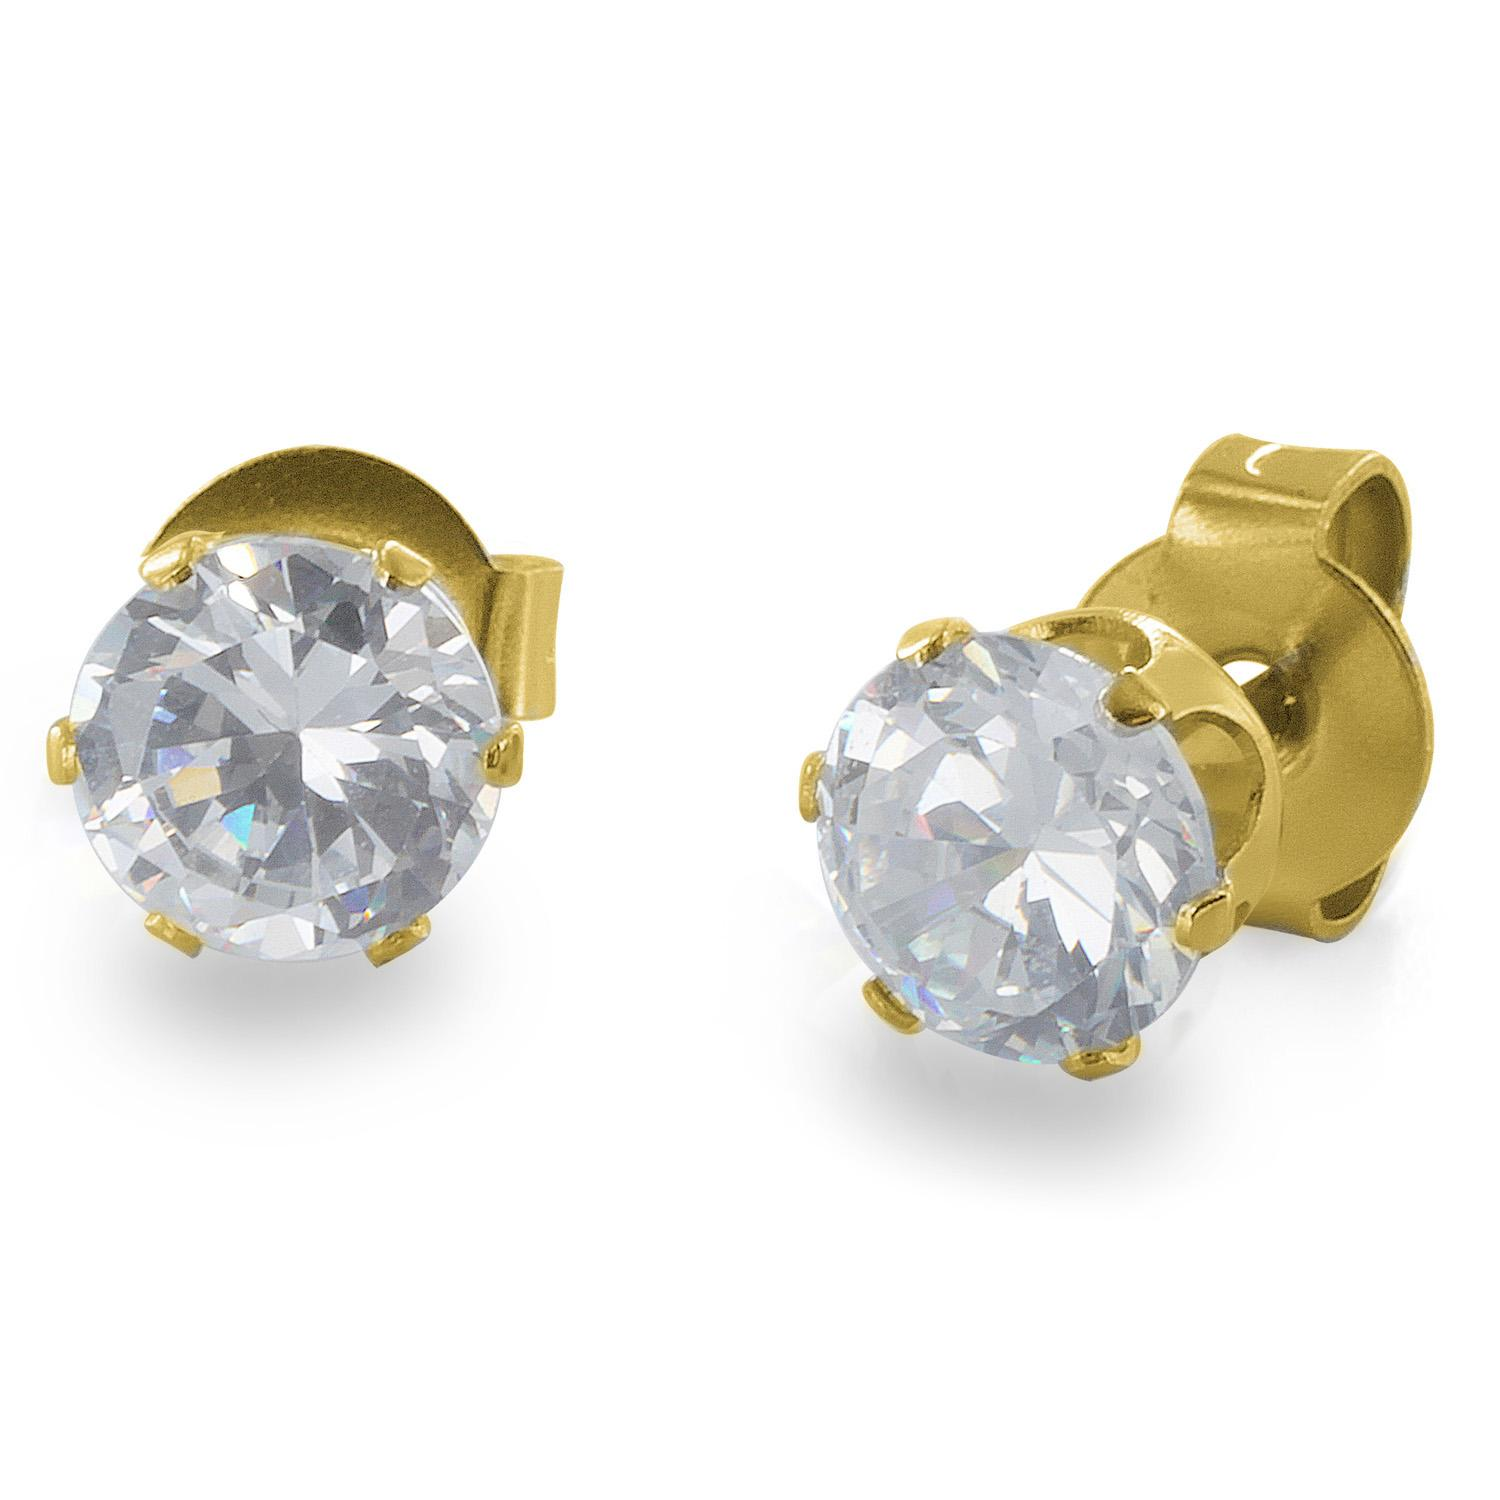 Gold Plated Stainless Steel Stud Earrings with Round Clear CZ - 3 mm